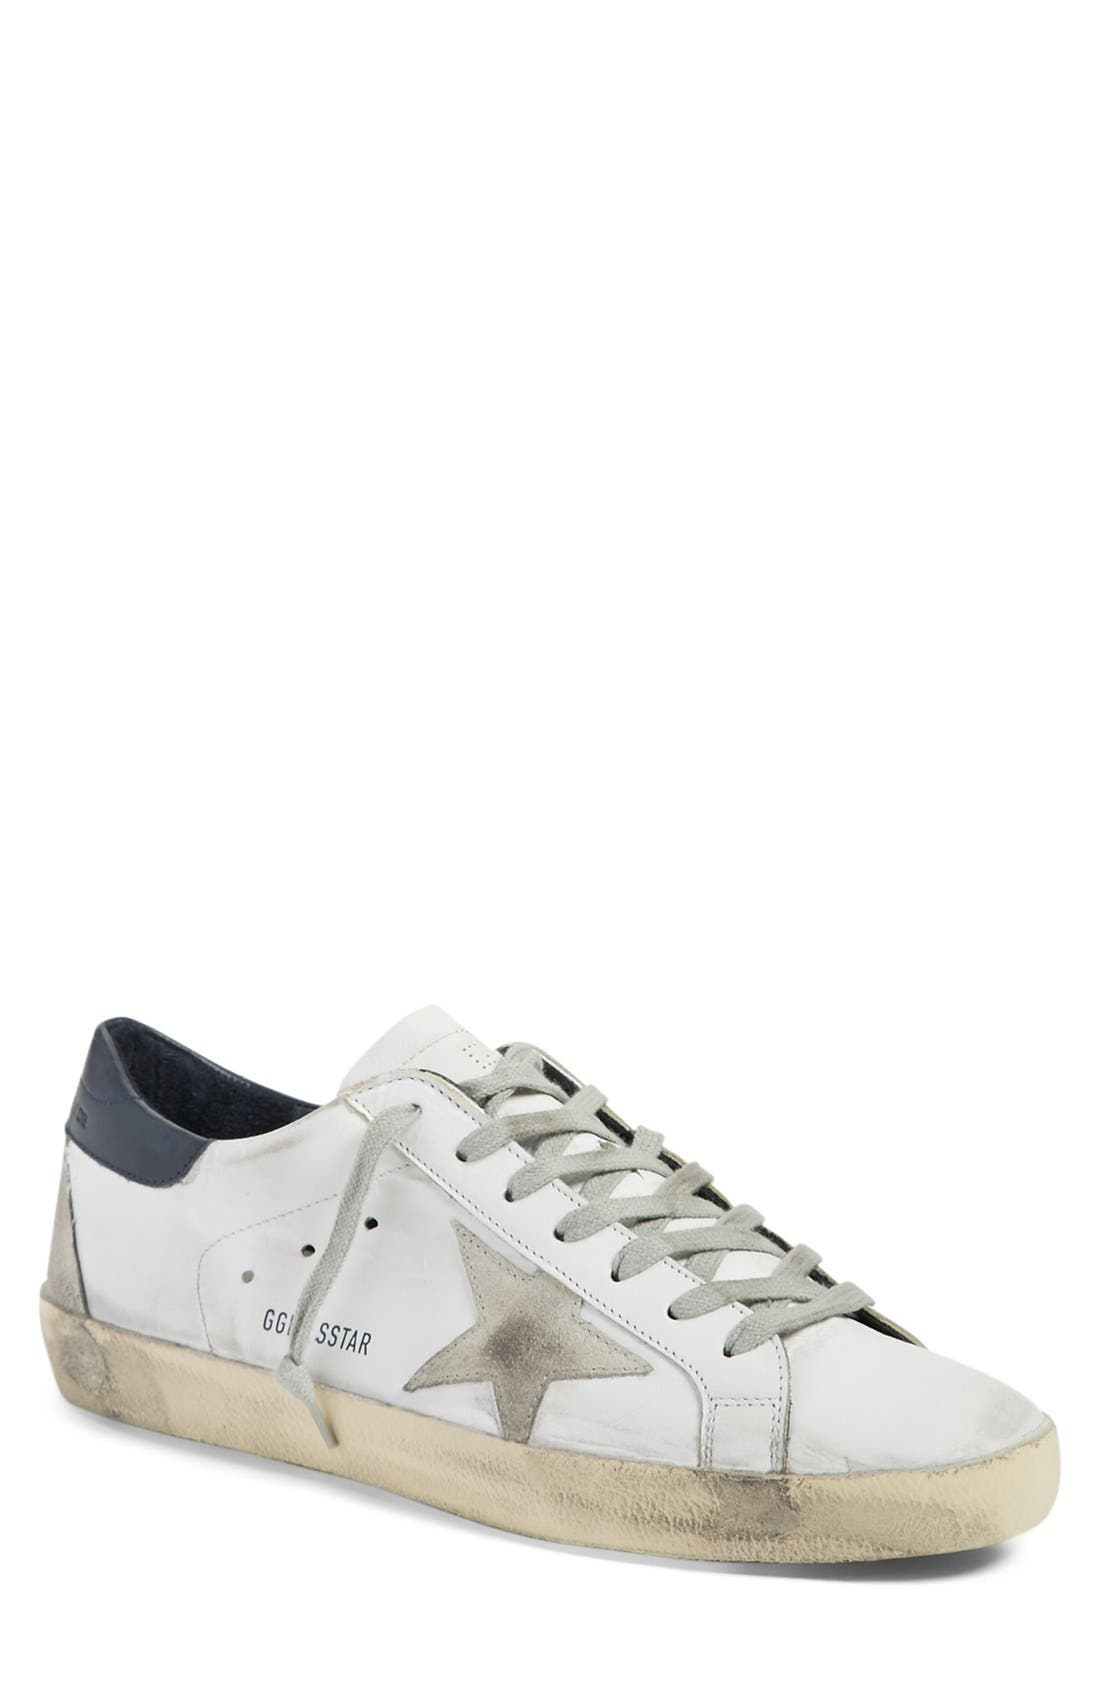 'Superstar' Sneaker,                             Main thumbnail 1, color,                             White Leather